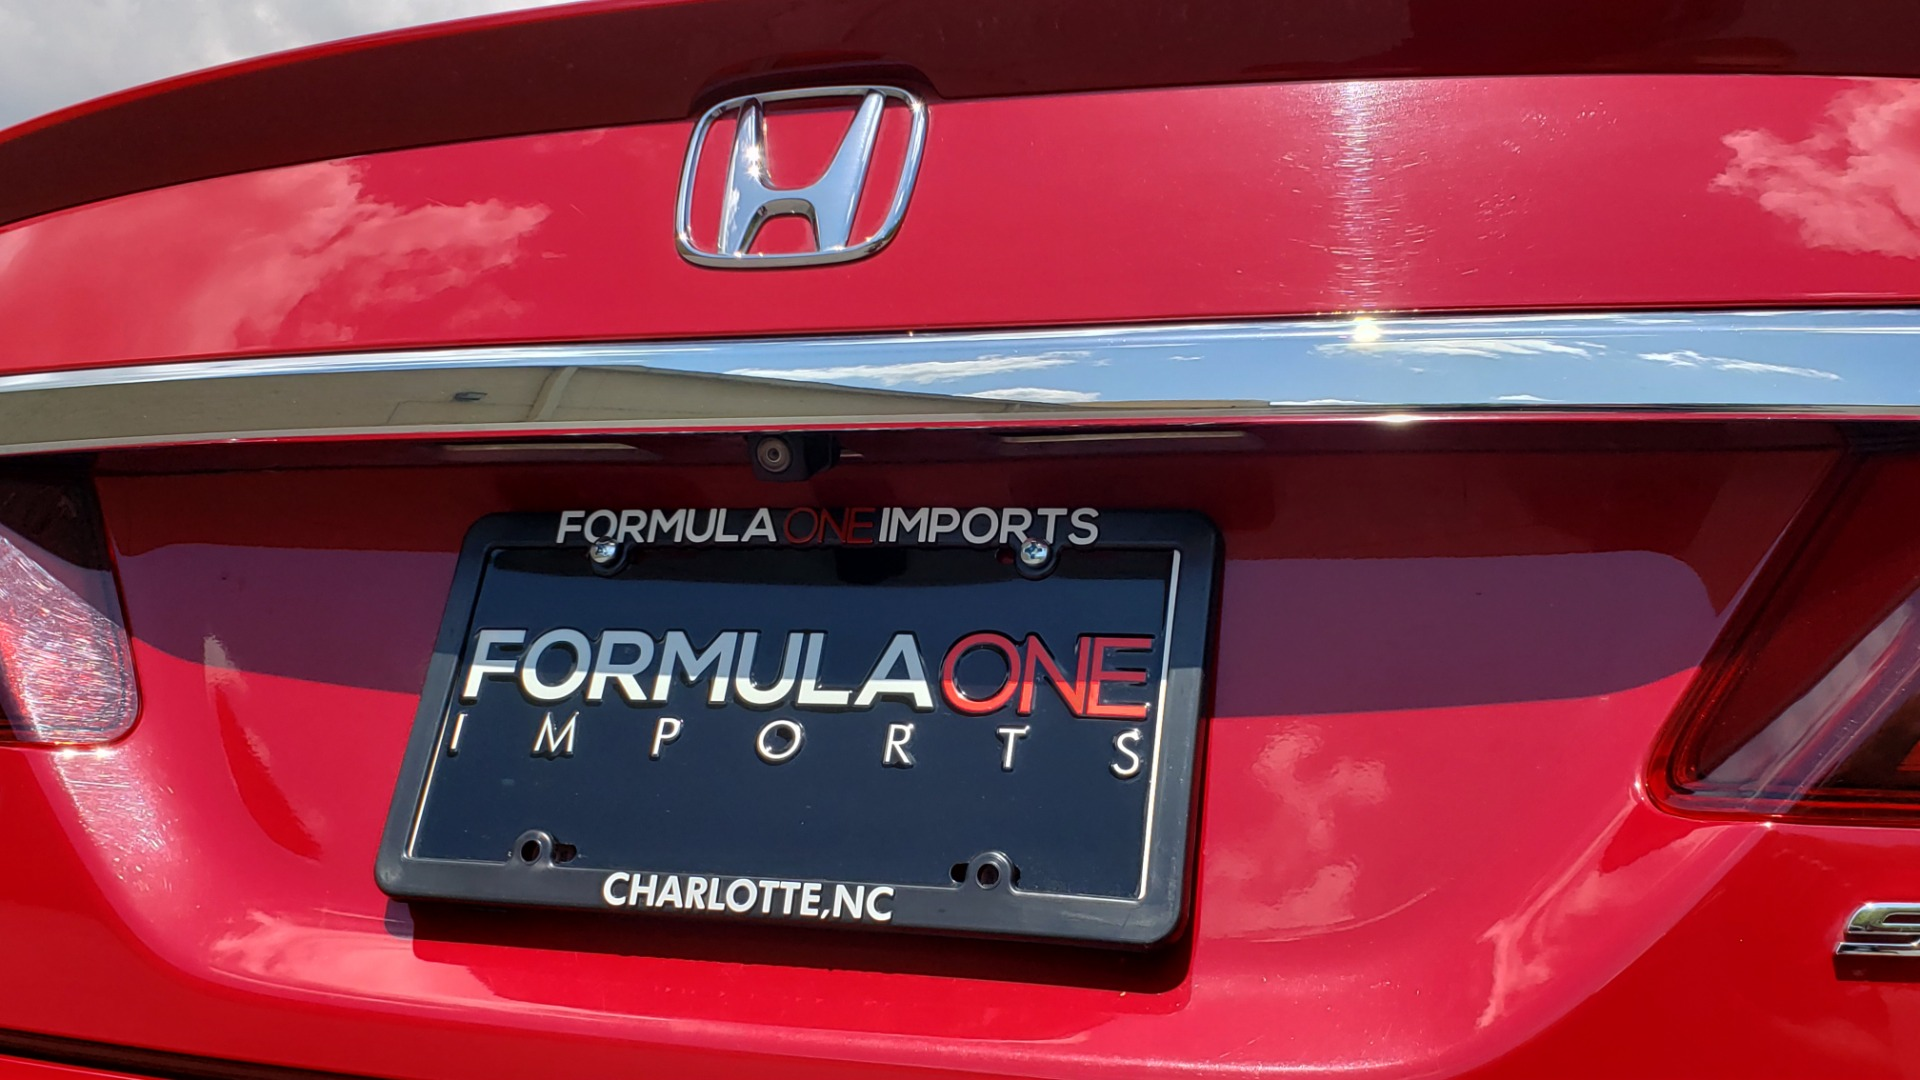 Used 2016 Honda ACCORD SEDAN SPORT / 4-CYL / CVT TRANS / SPOILER / 19IN ALLOY WHEELS for sale Sold at Formula Imports in Charlotte NC 28227 27